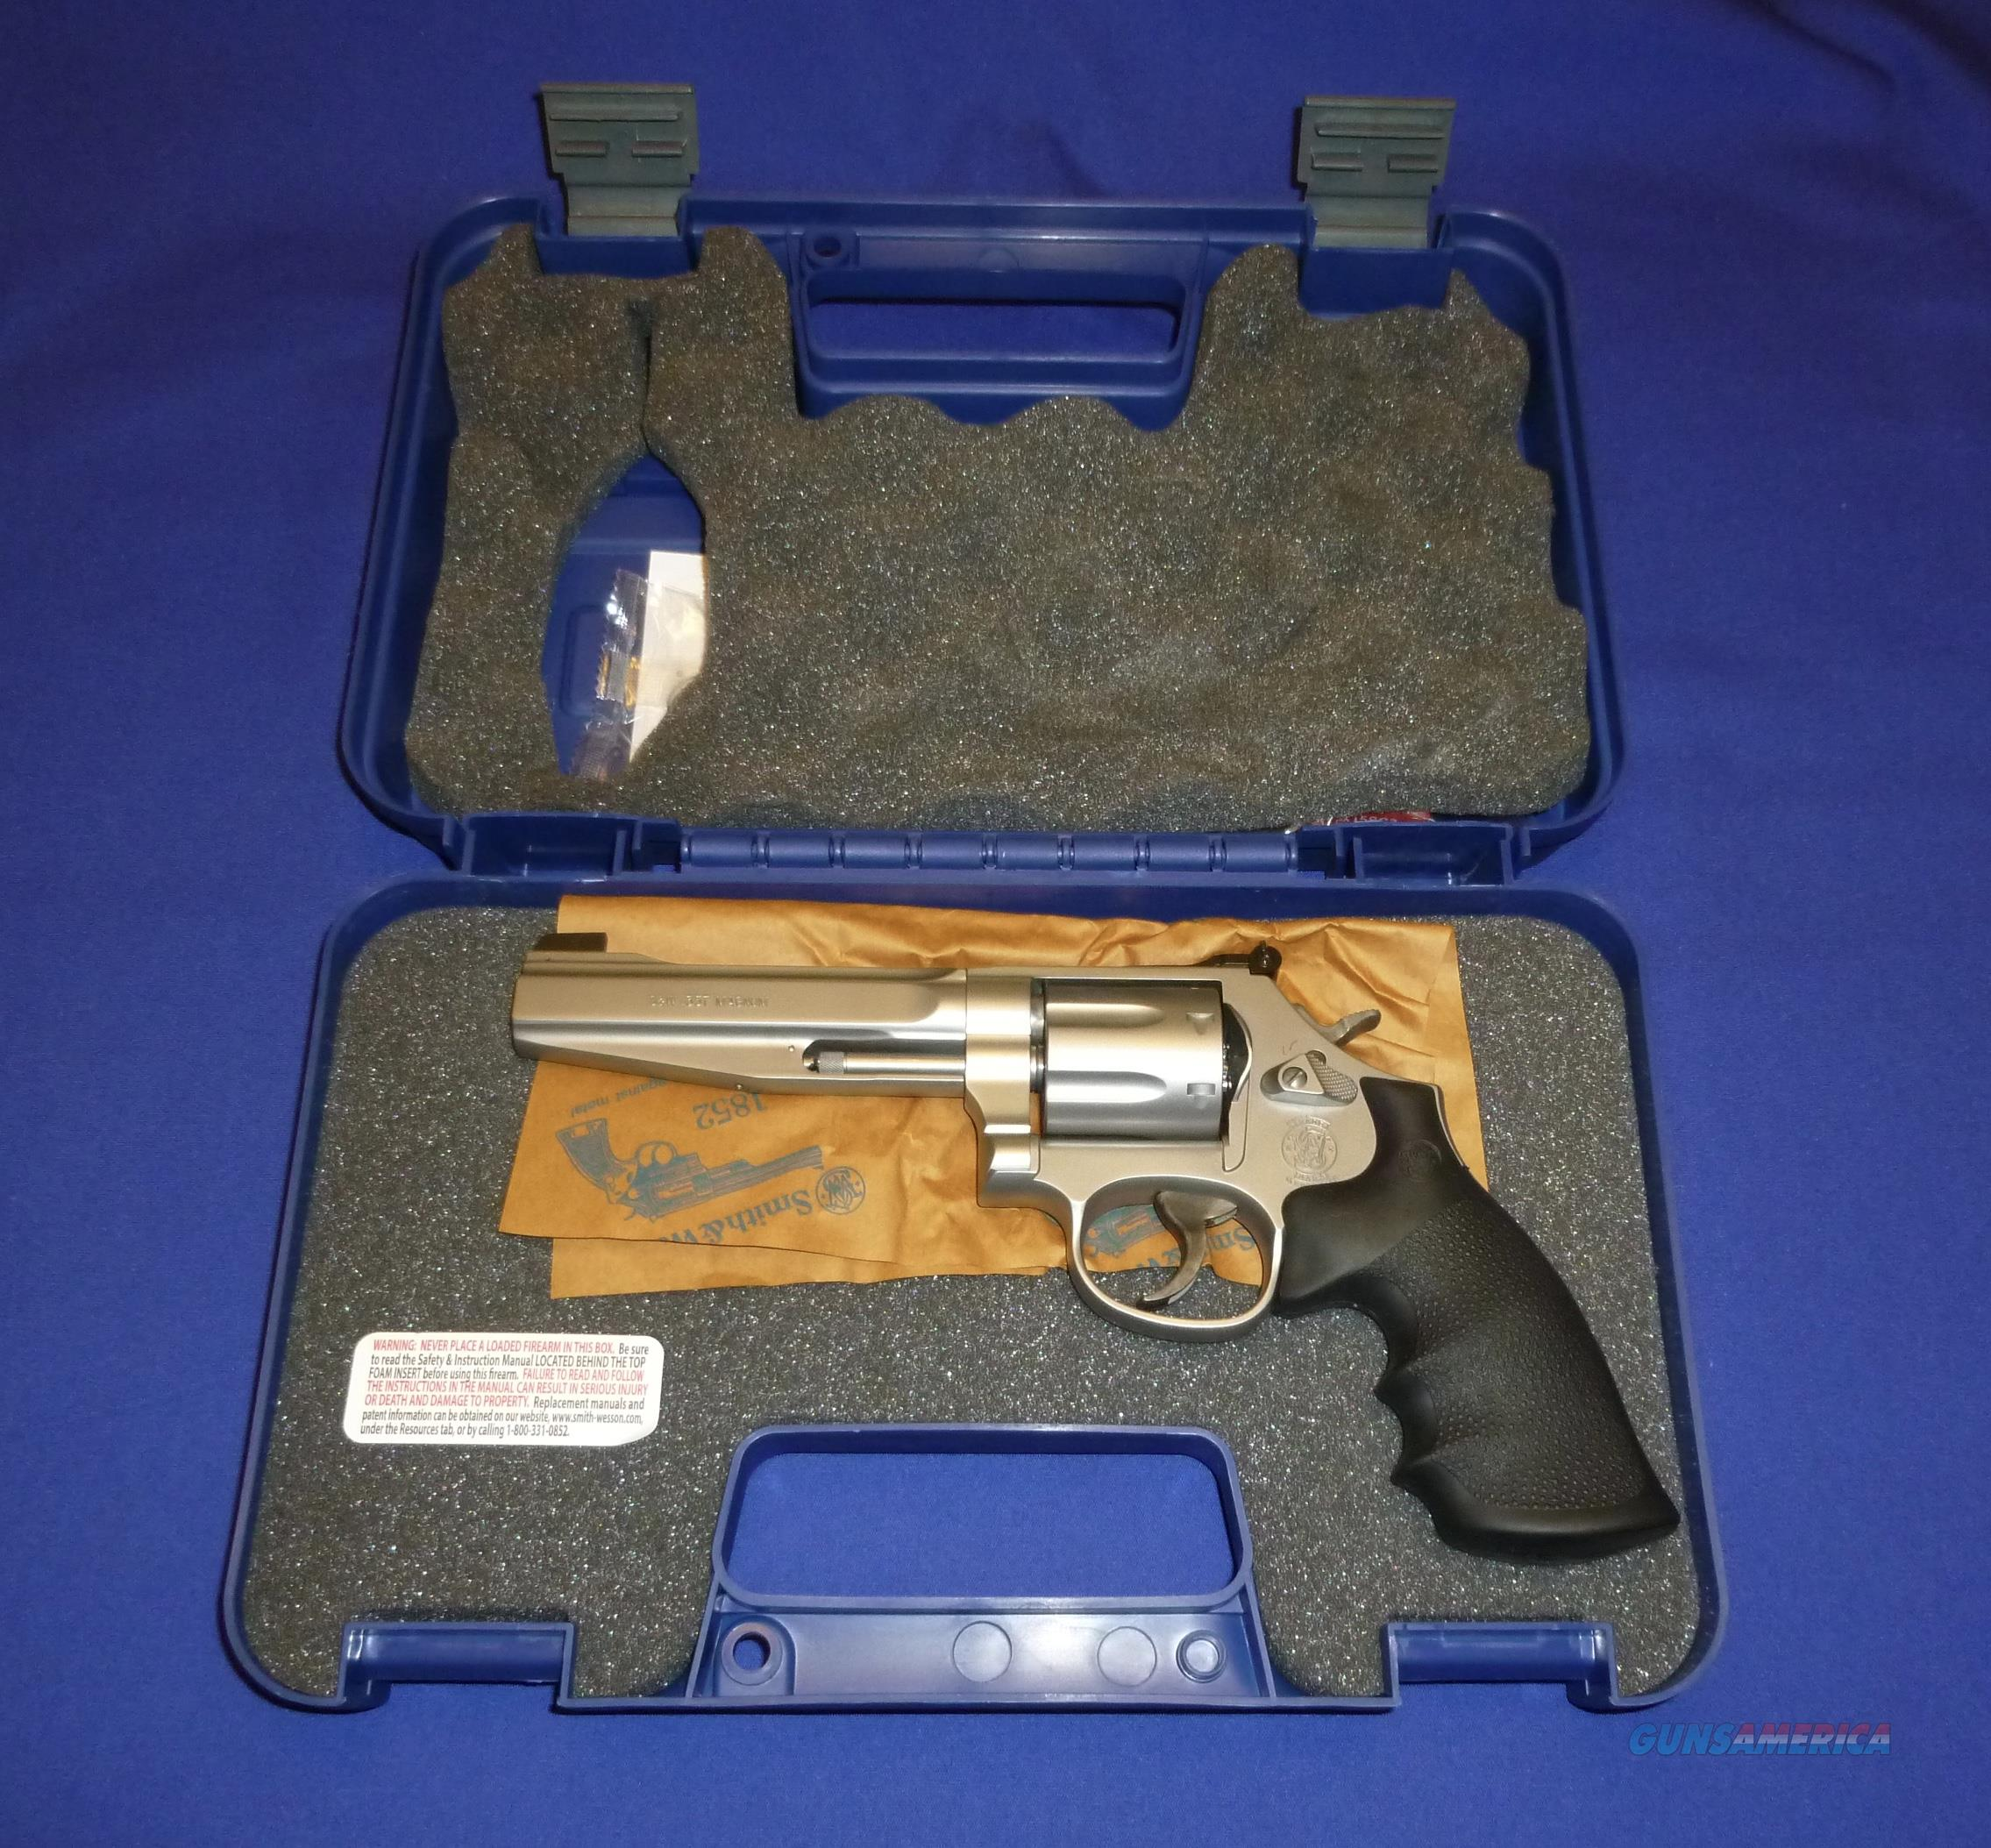 SMITH & WESSON 686 PLUS PRO SERIES 357 MAGNUM REVOLVER NEW!  Guns > Pistols > Smith & Wesson Revolvers > Med. Frame ( K/L )